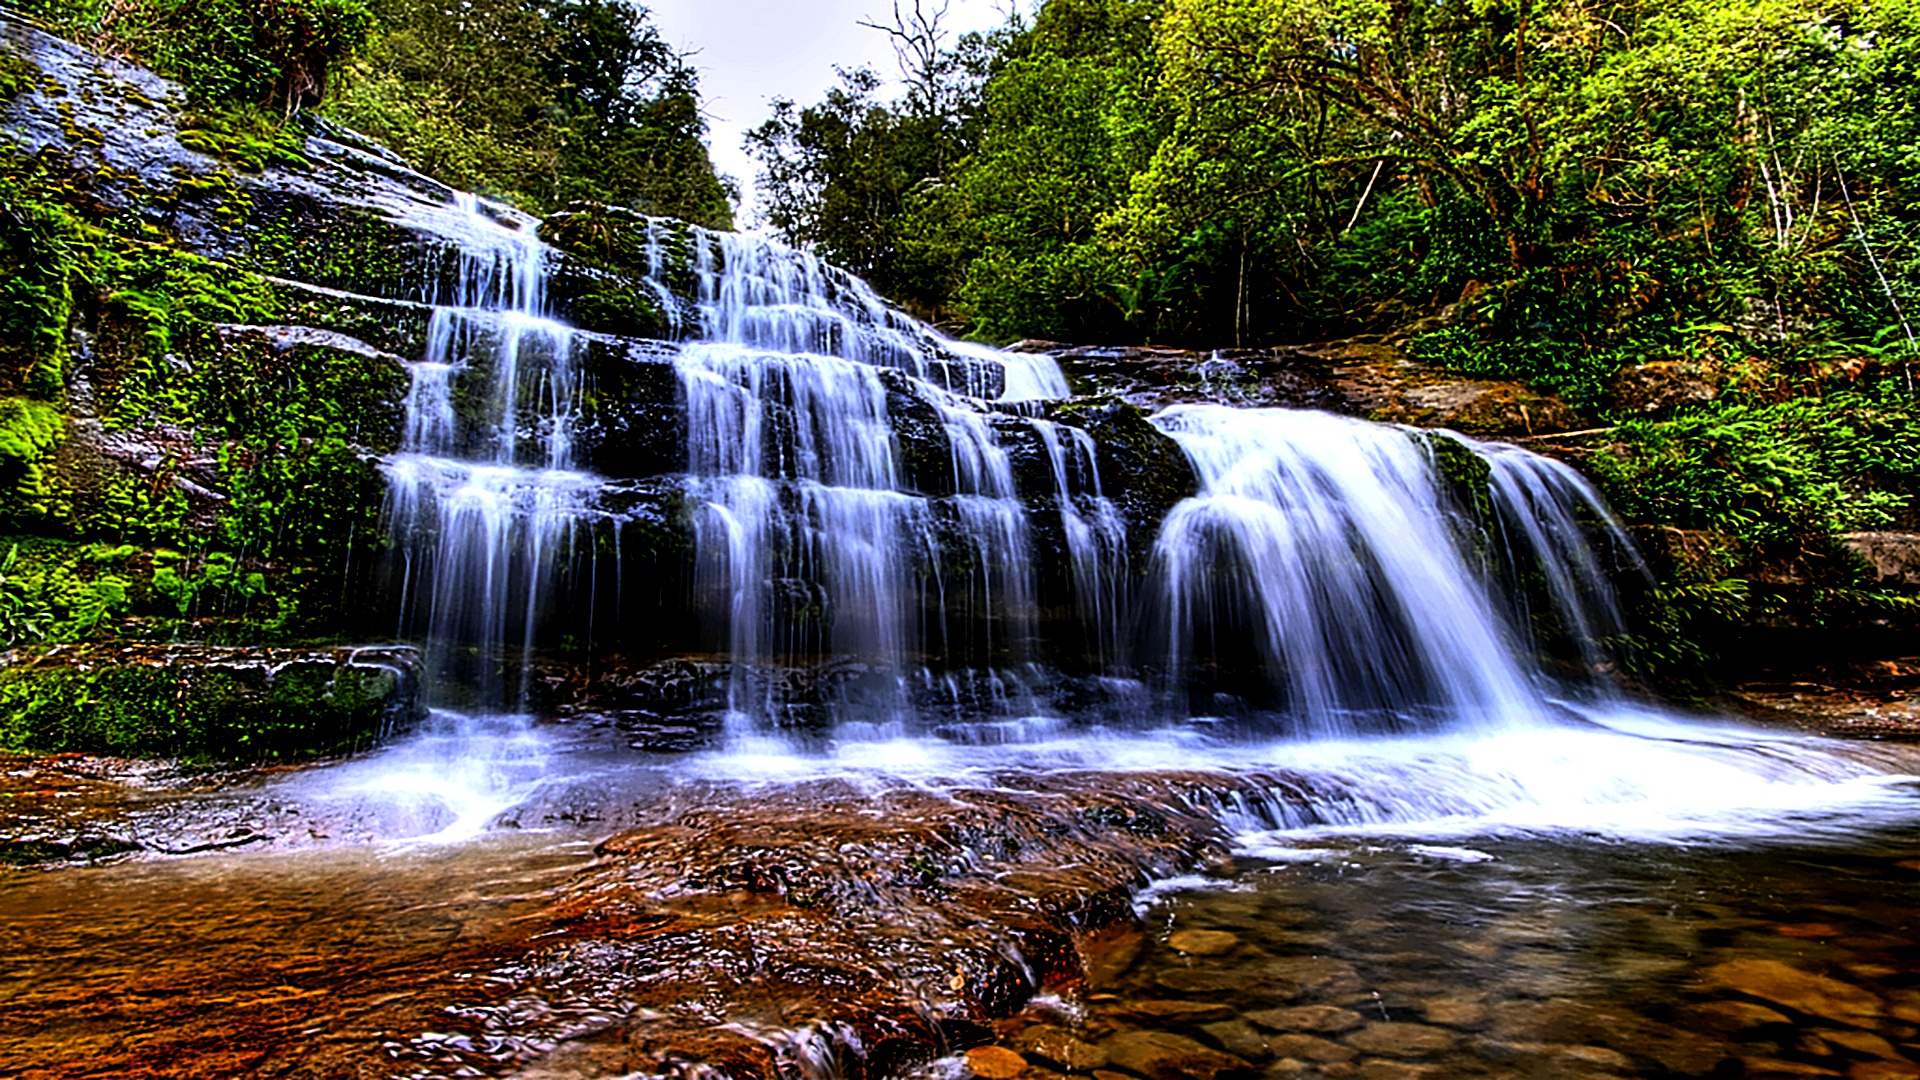 Live Waterfall Wallpaper Downloads 1920x1080